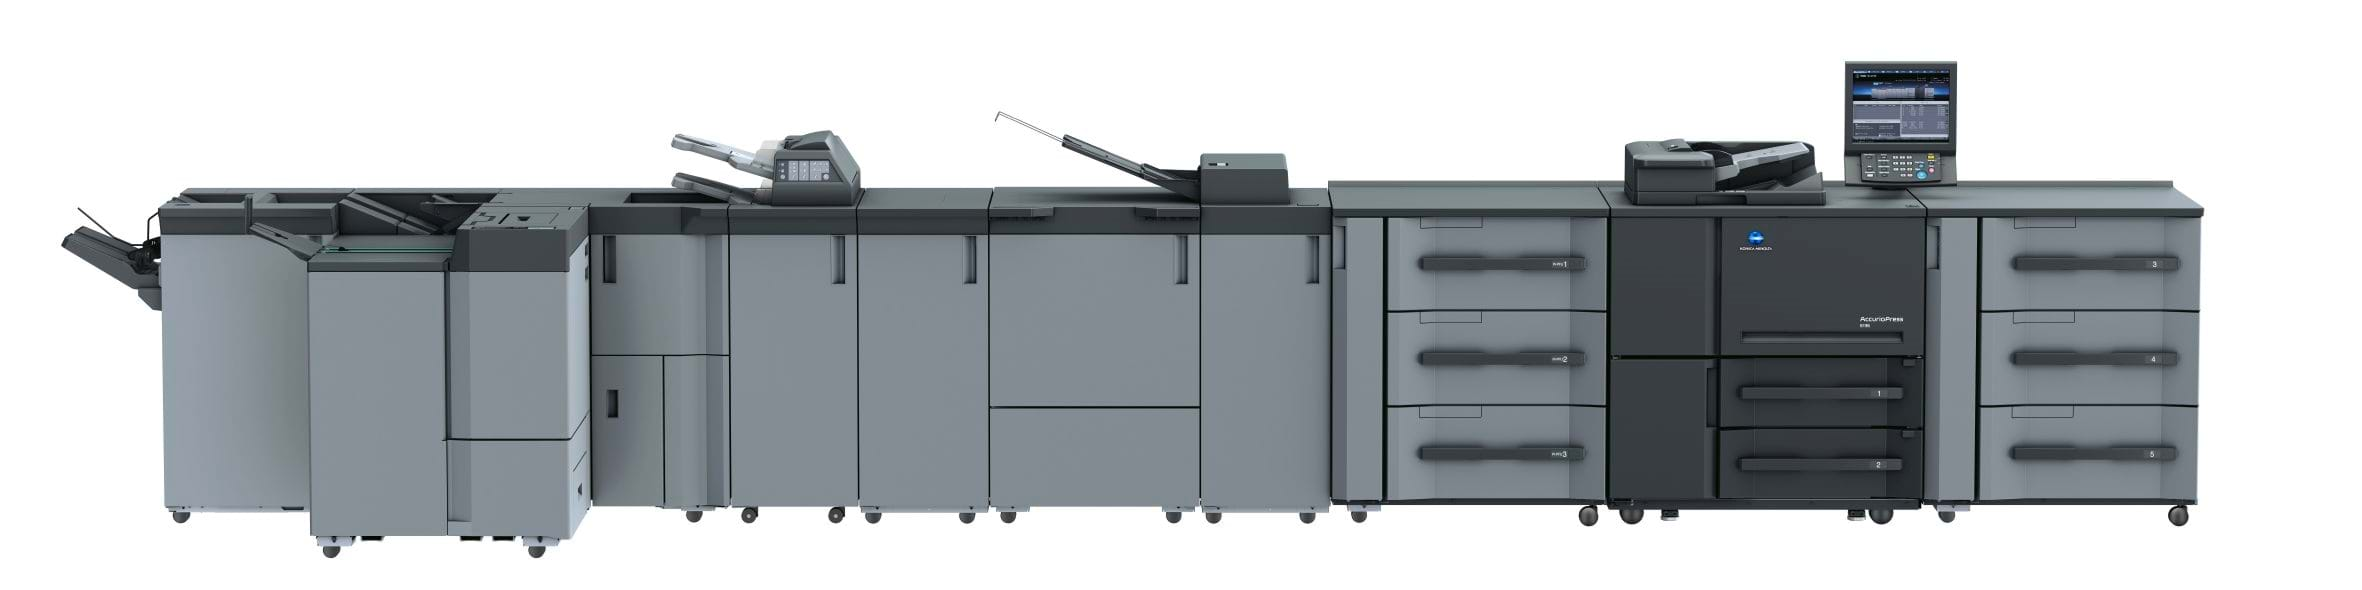 Konica Minolta AccurioPress 6136p professionel printer